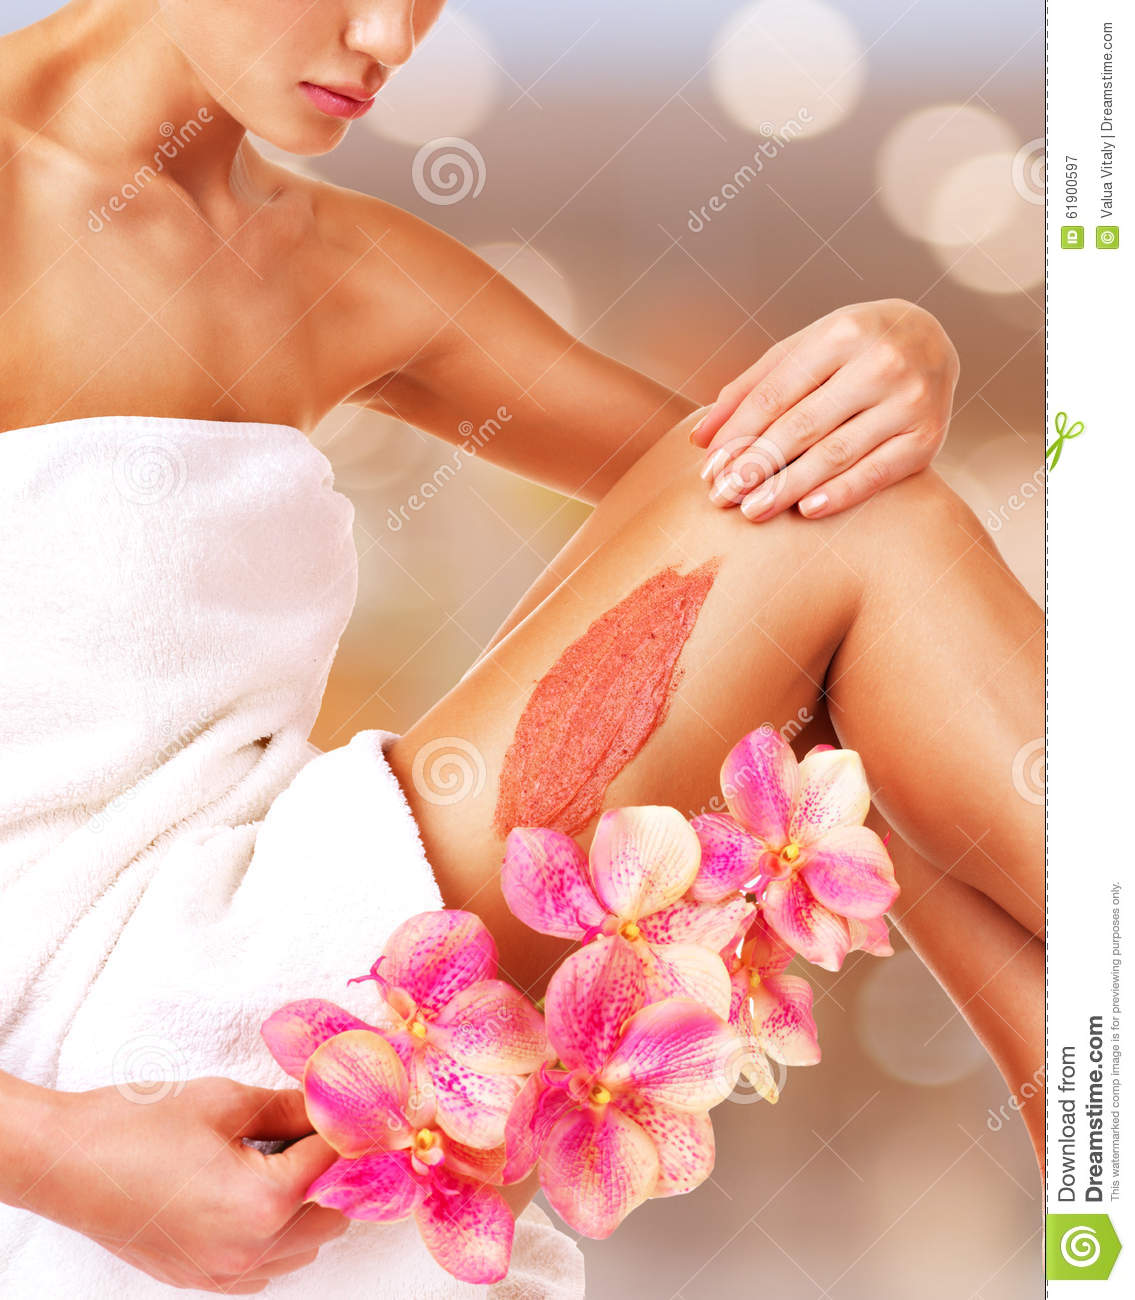 The woman with a beautiful with flowers body using a scrub